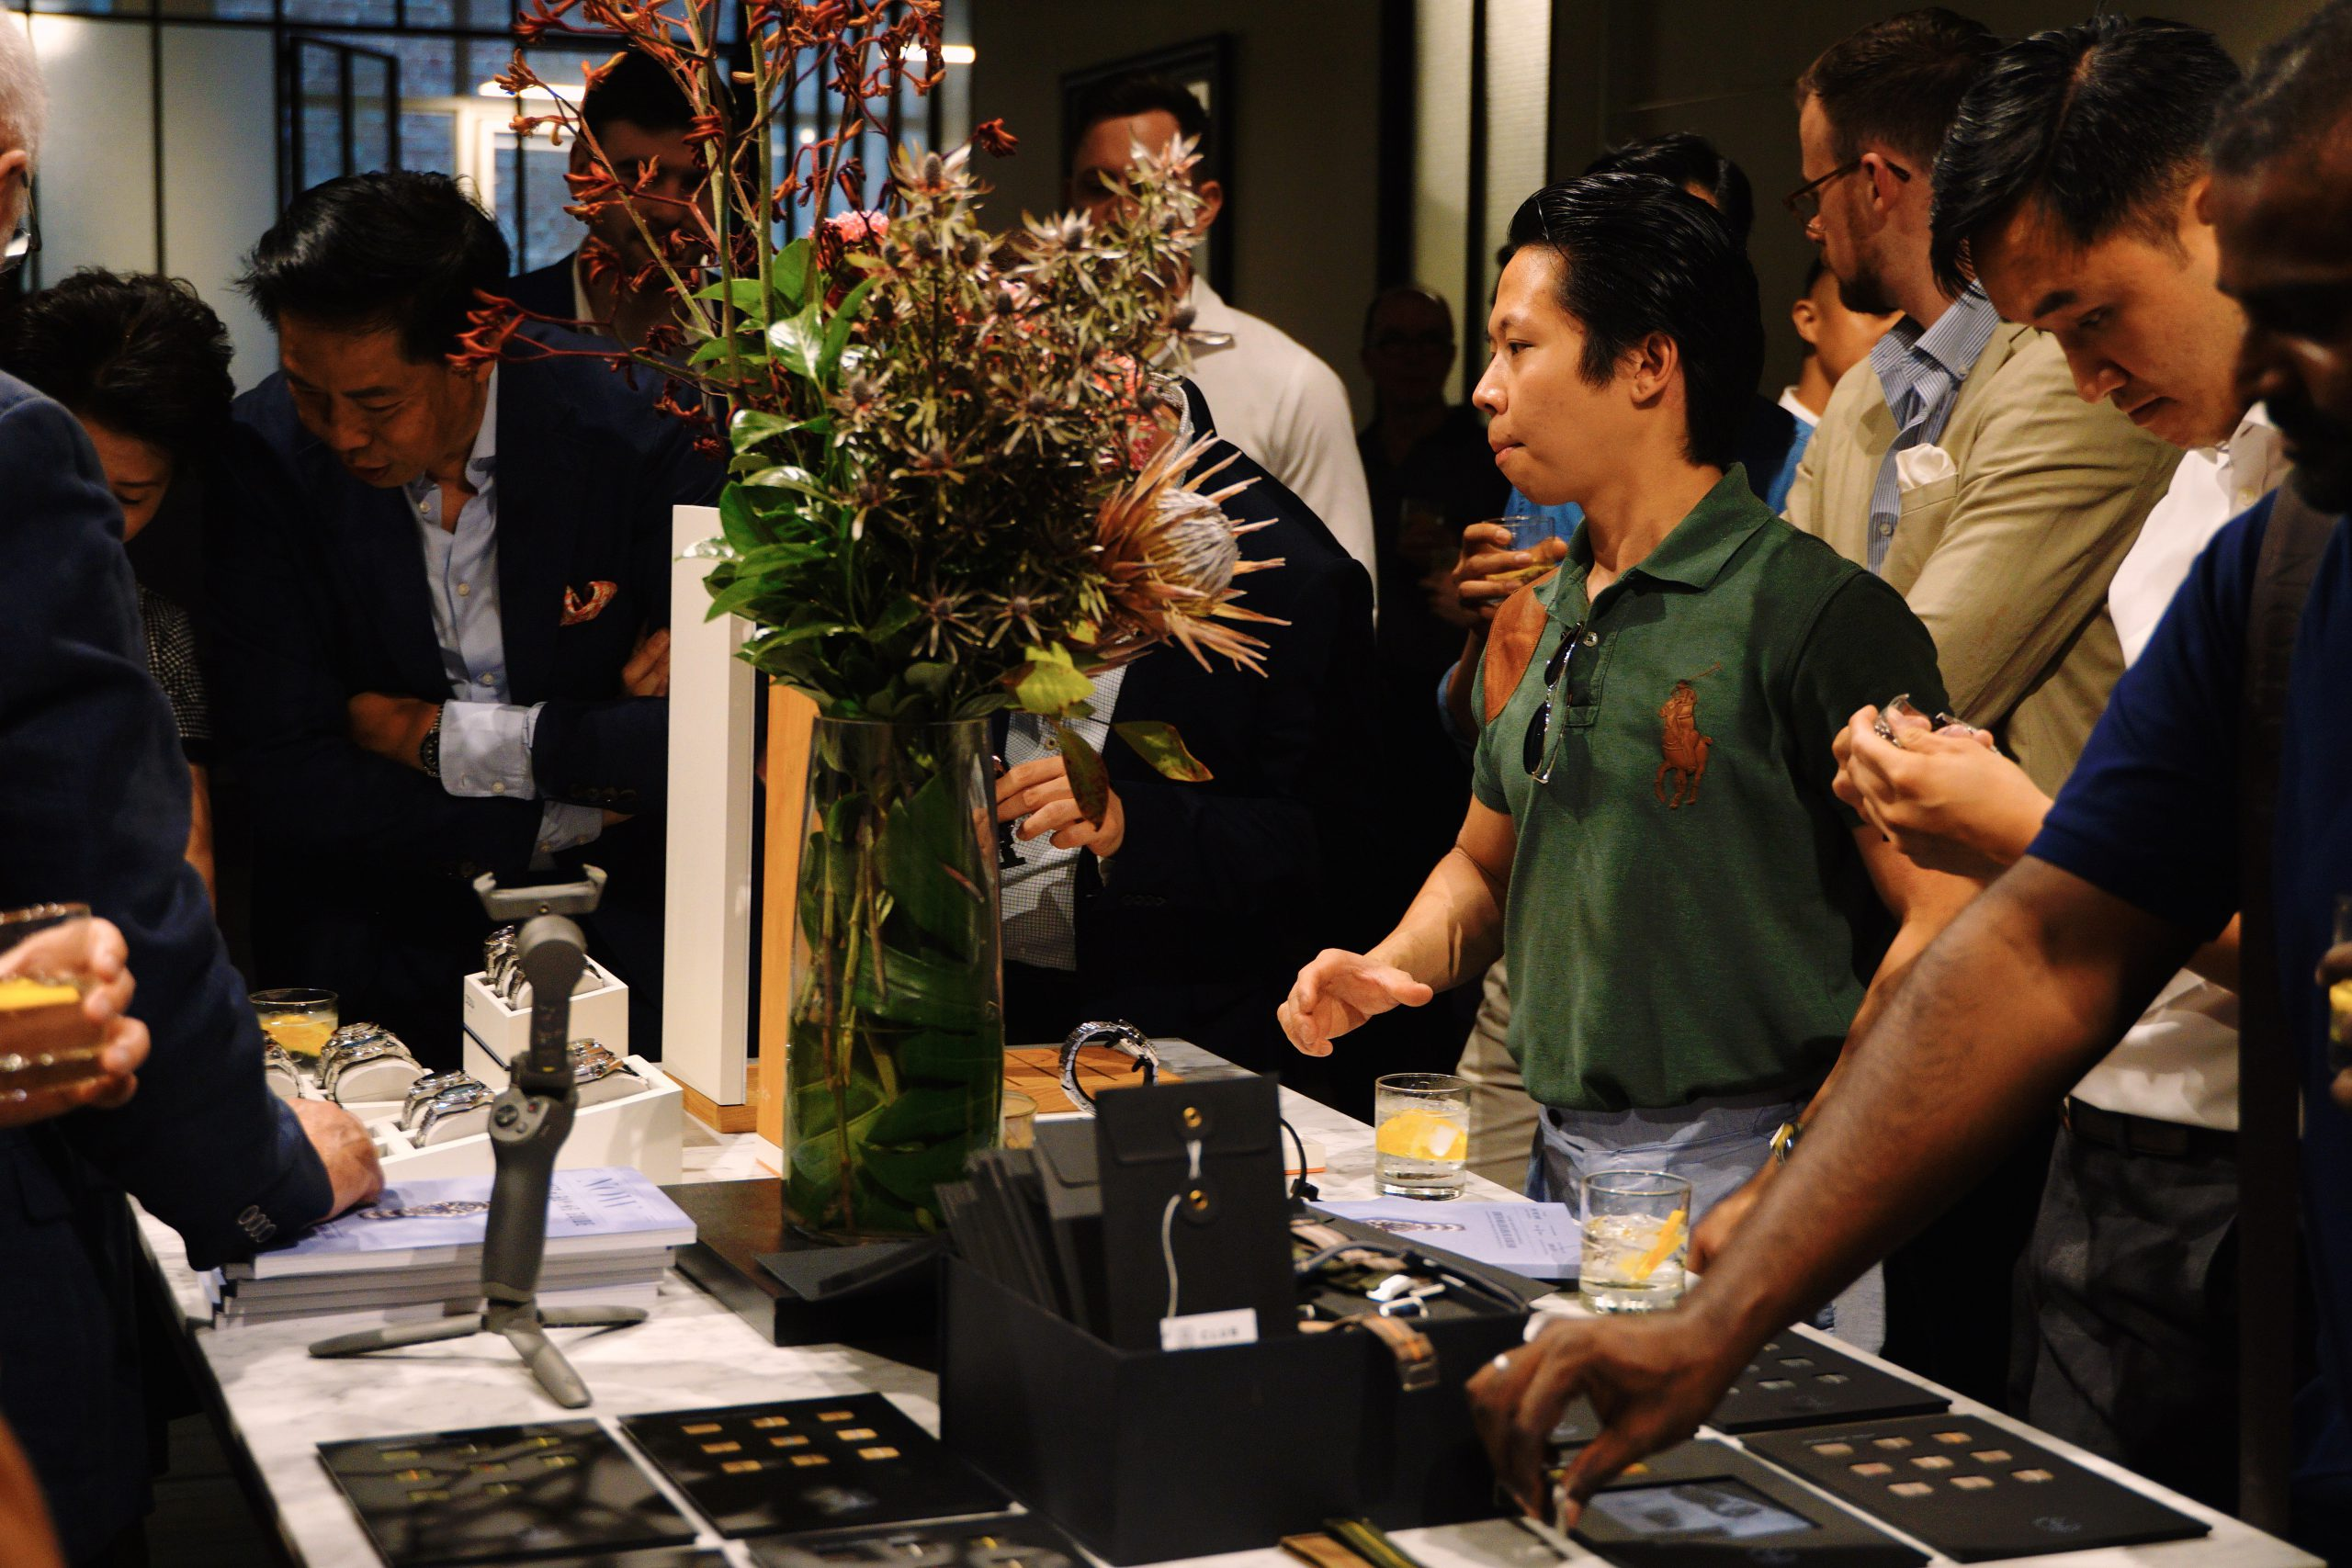 Real watch lovers of Sydney turn out for second launch of DOXA in Australia